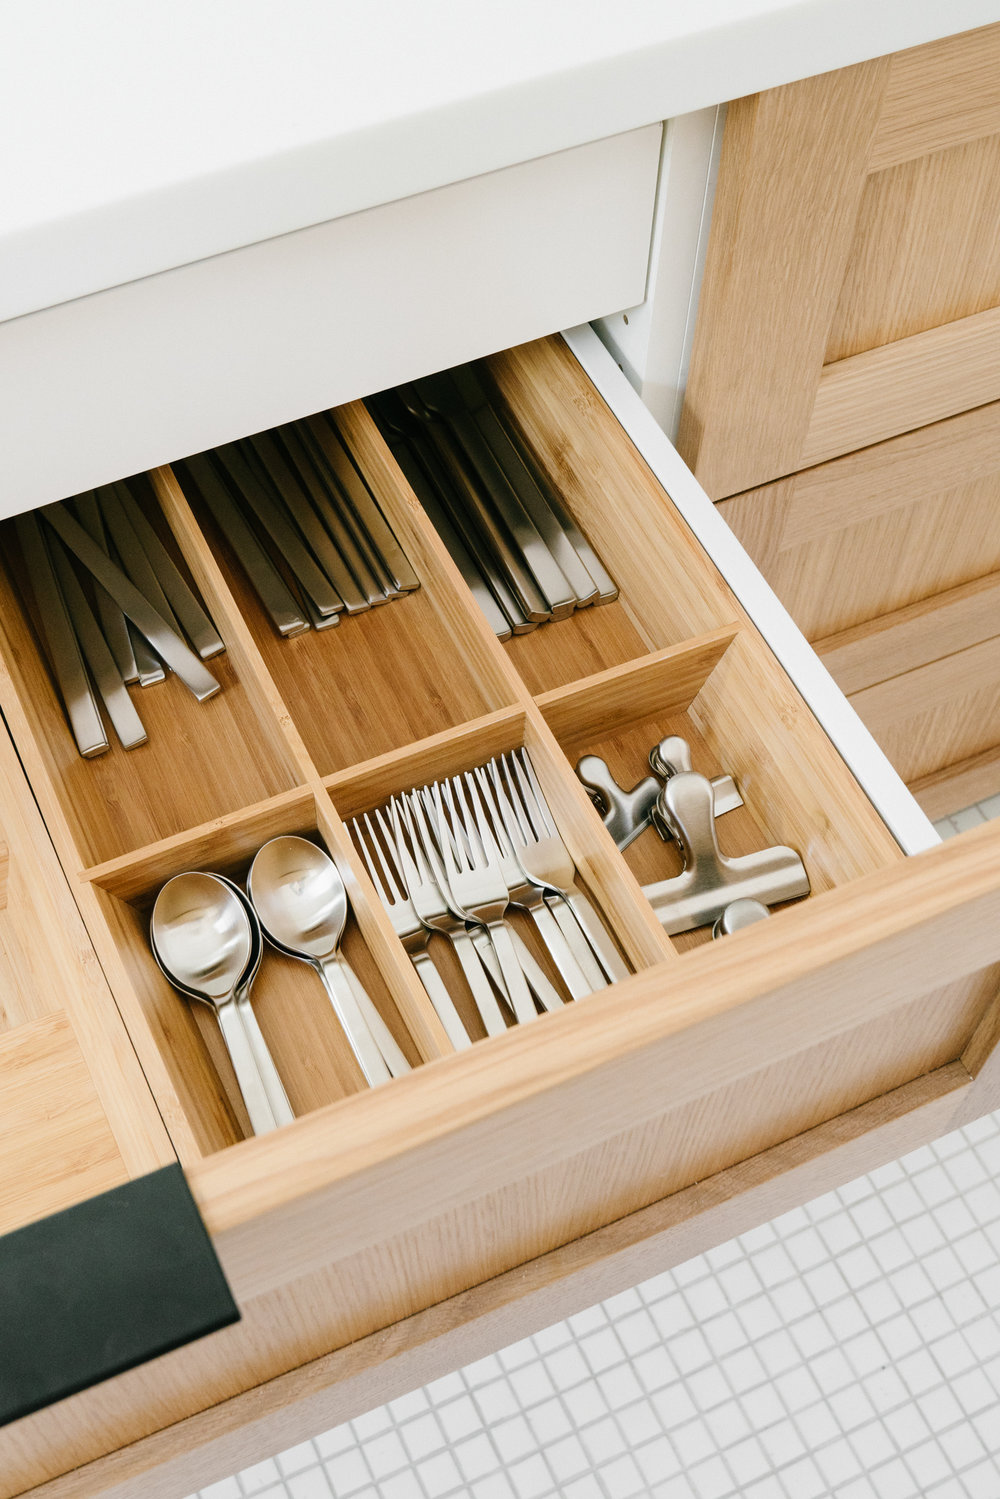 How to Buy the Best Flatware